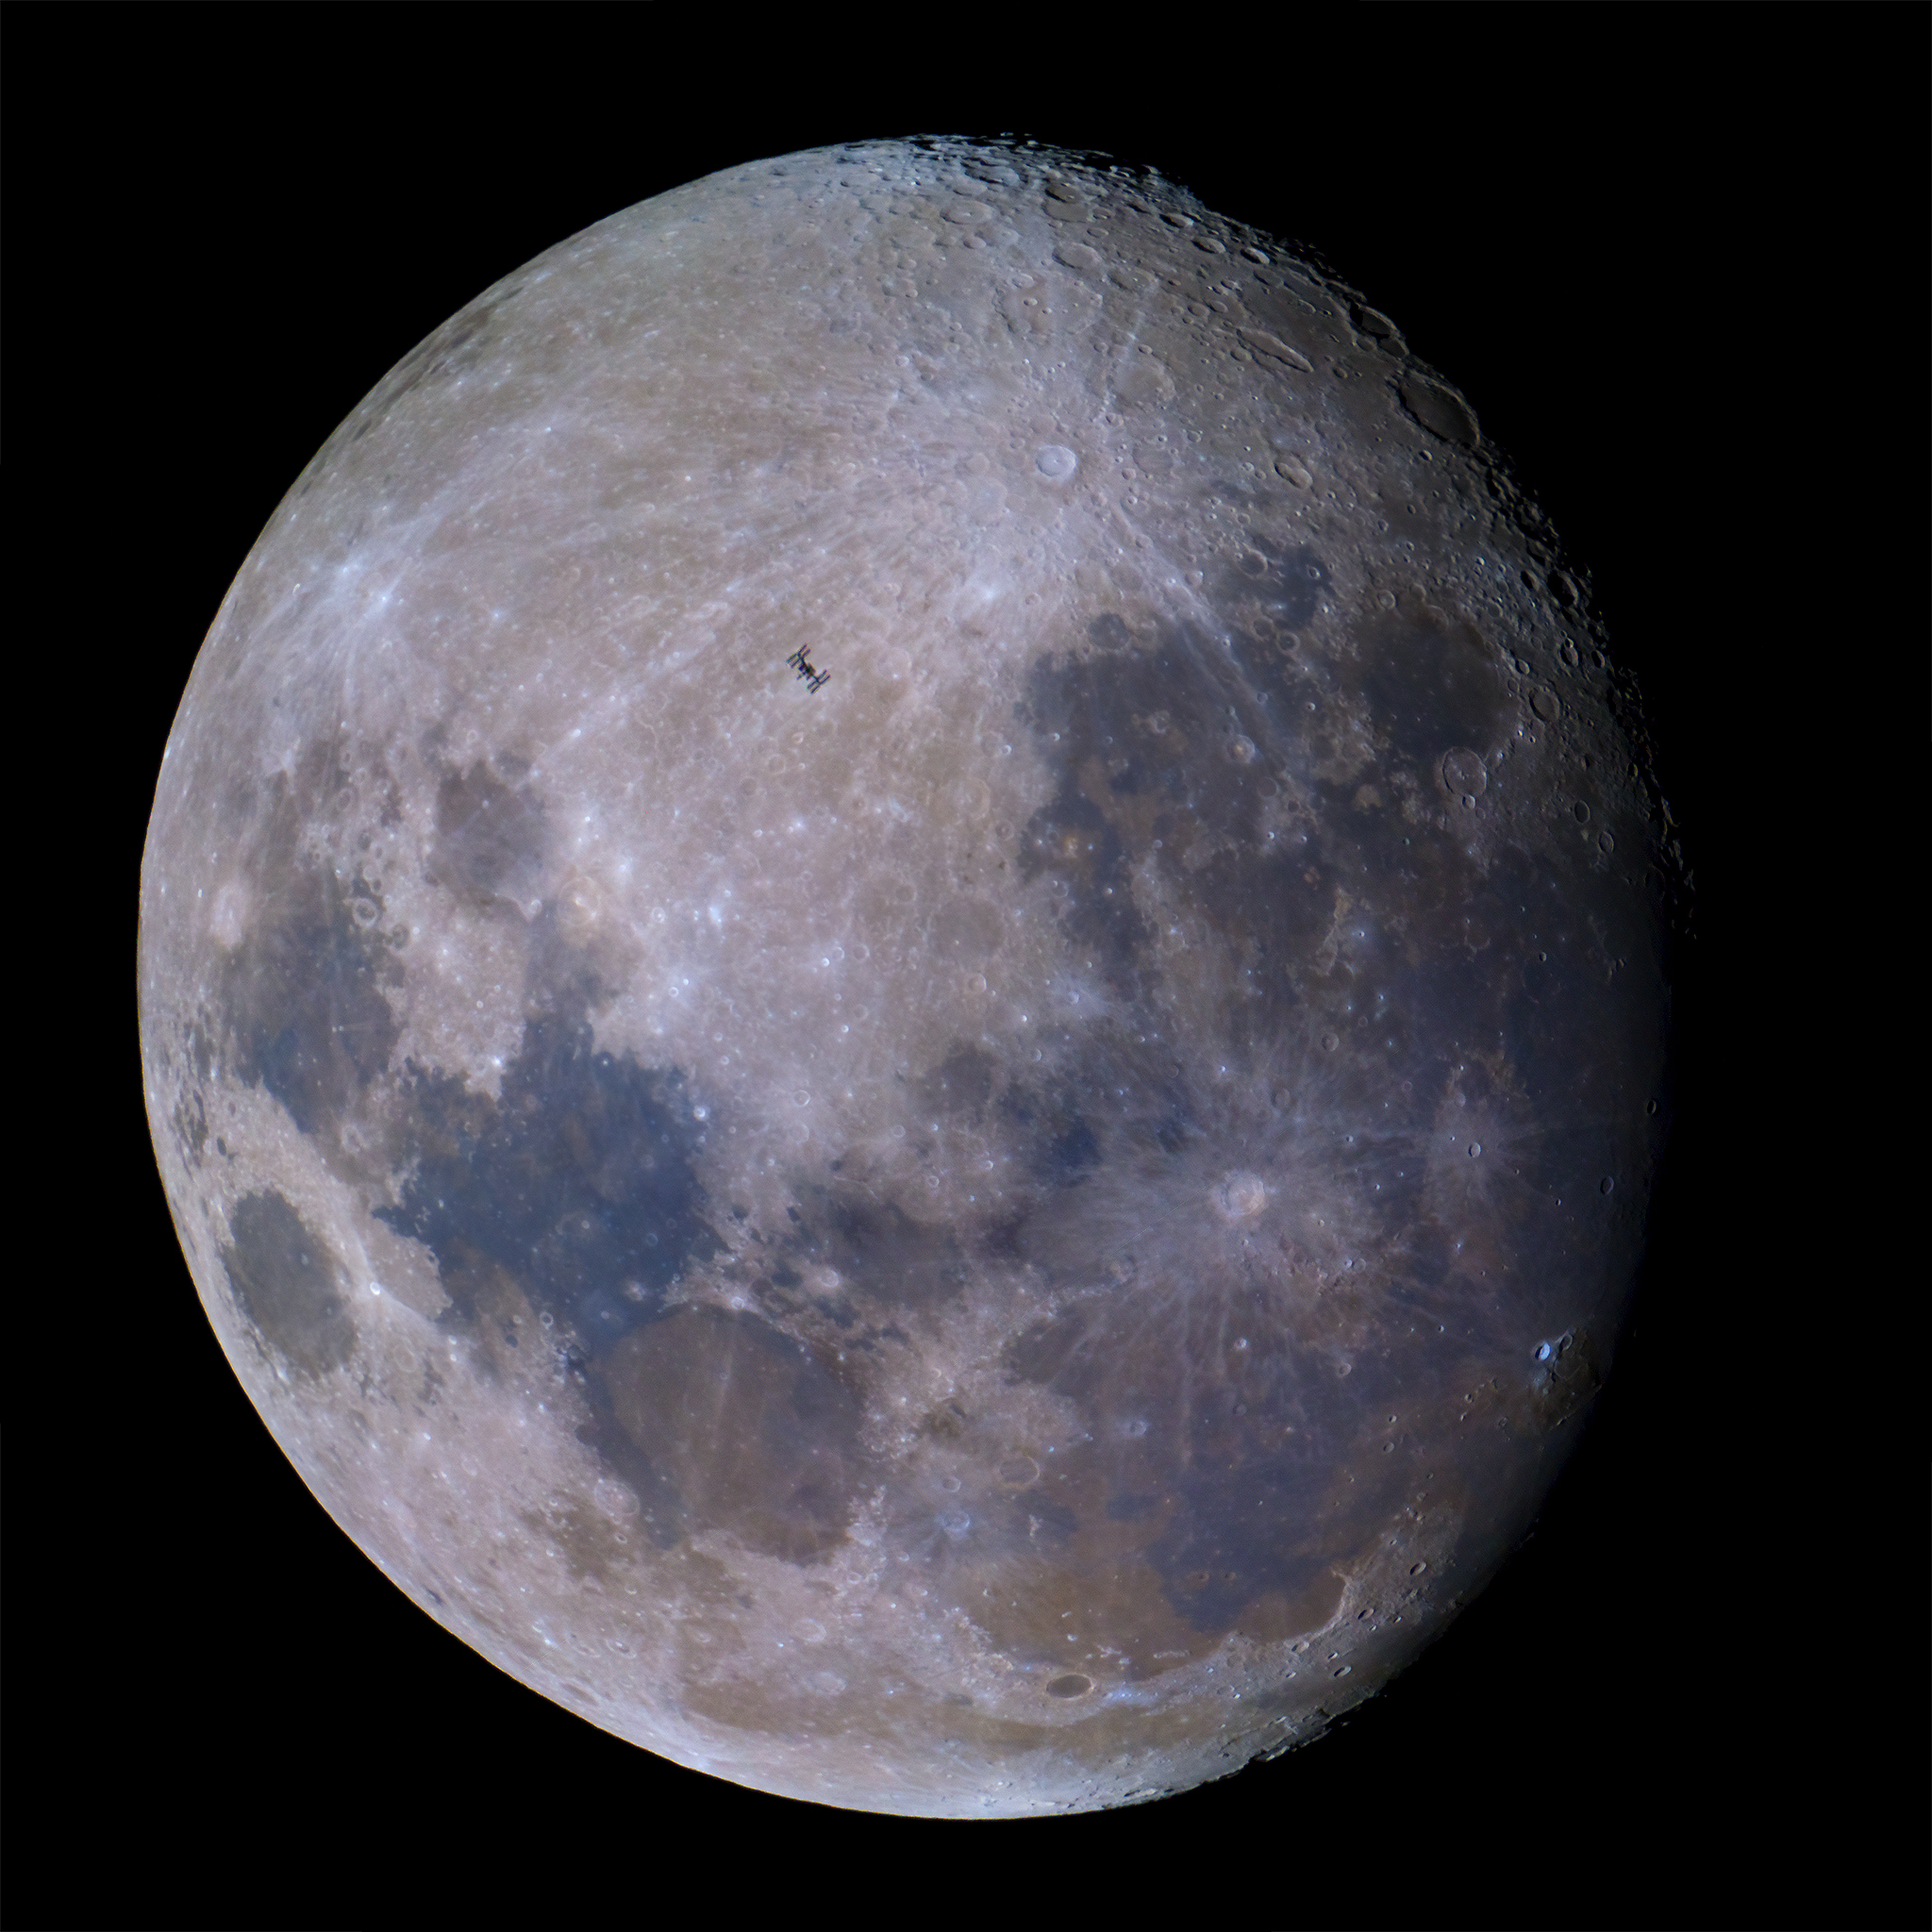 space station lunar transit - photo #15